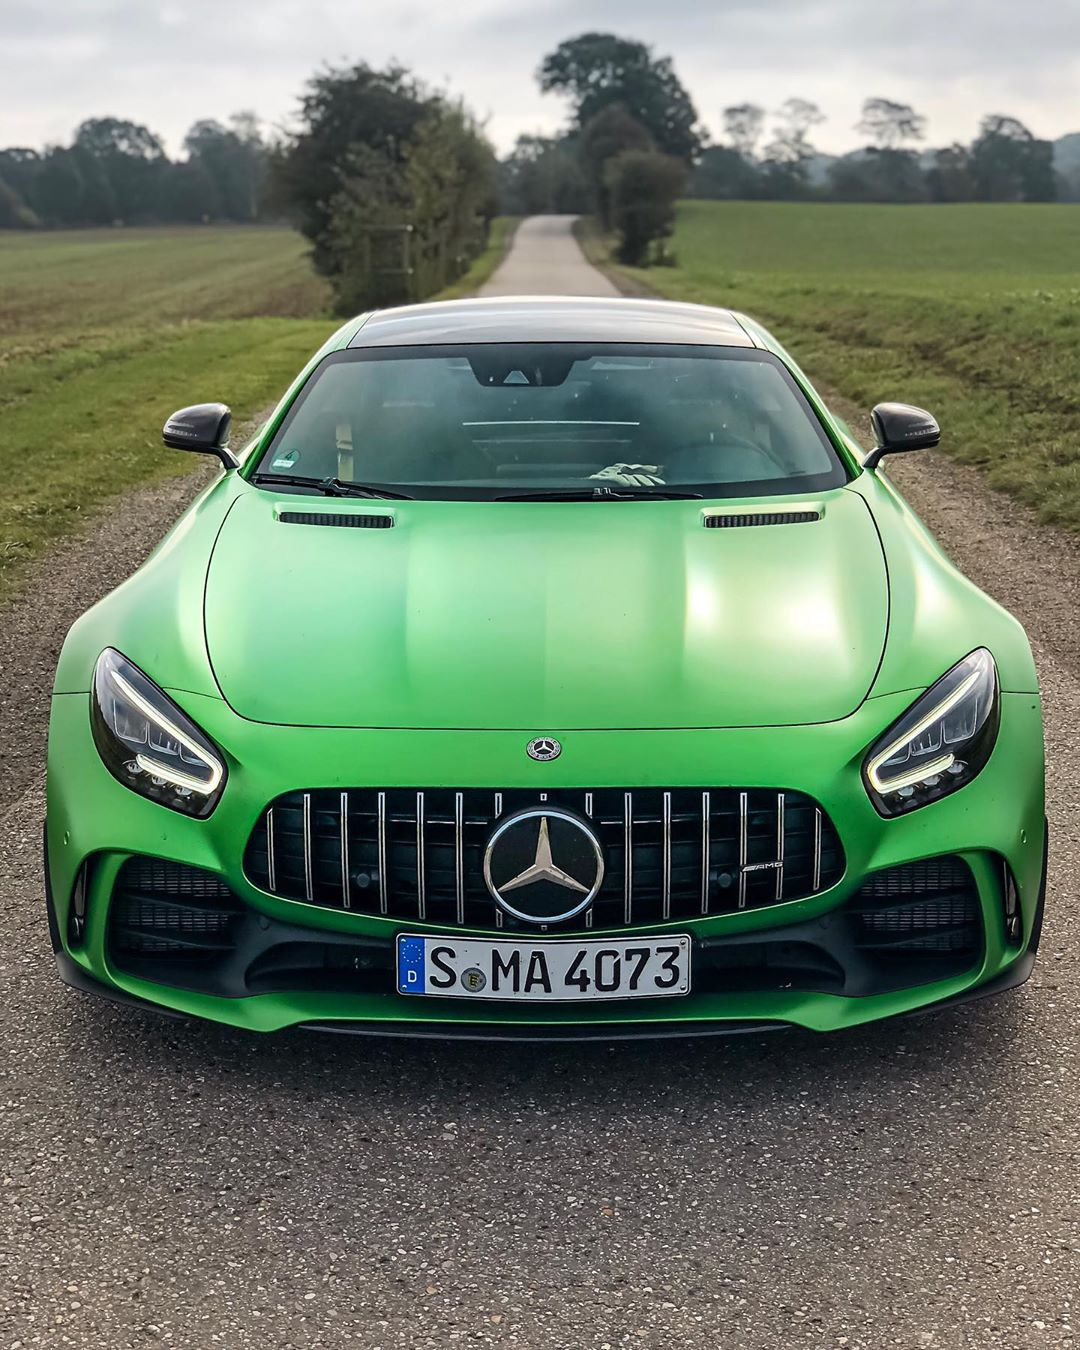 Filming the DRIVE & SOUND of the GT R in Kiel today💥🍏💪…lots of background stuff in our stories already😇 #mercedesamg #mbsocialcar #amg #amggtr #gtr #amggtrpro #amggt #greenhellmagno #greenhell #automanntv